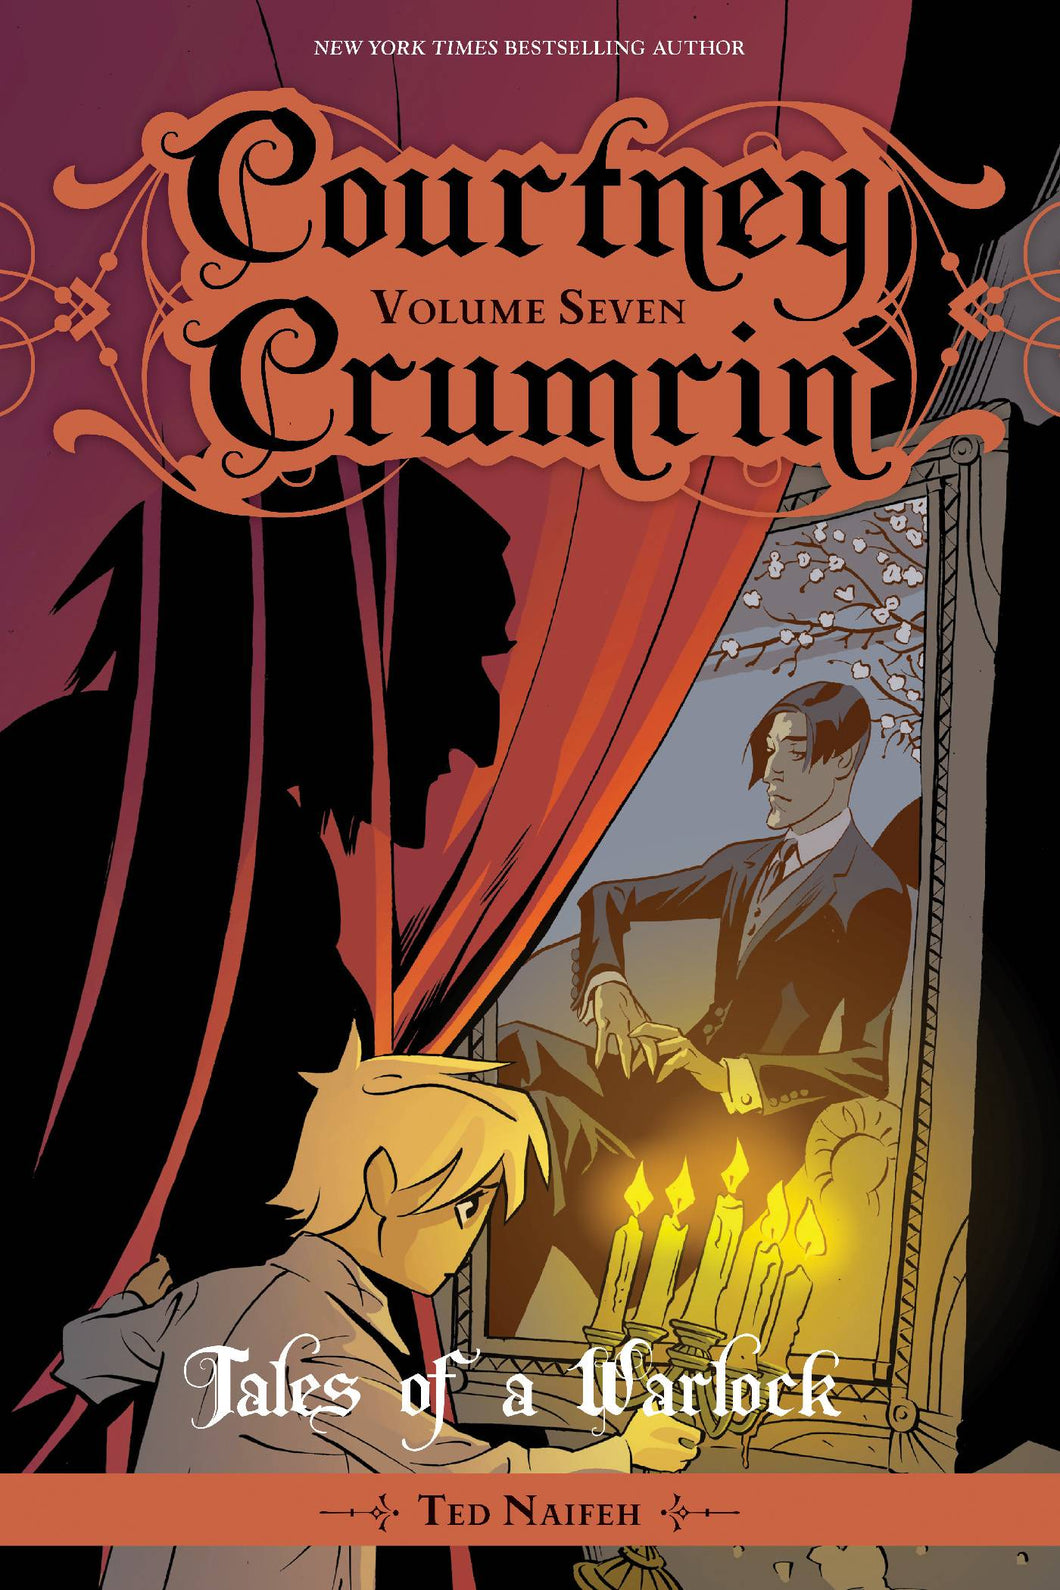 COURTNEY CRUMRIN: TALES OF A WARLOCK VOL 7 TPB